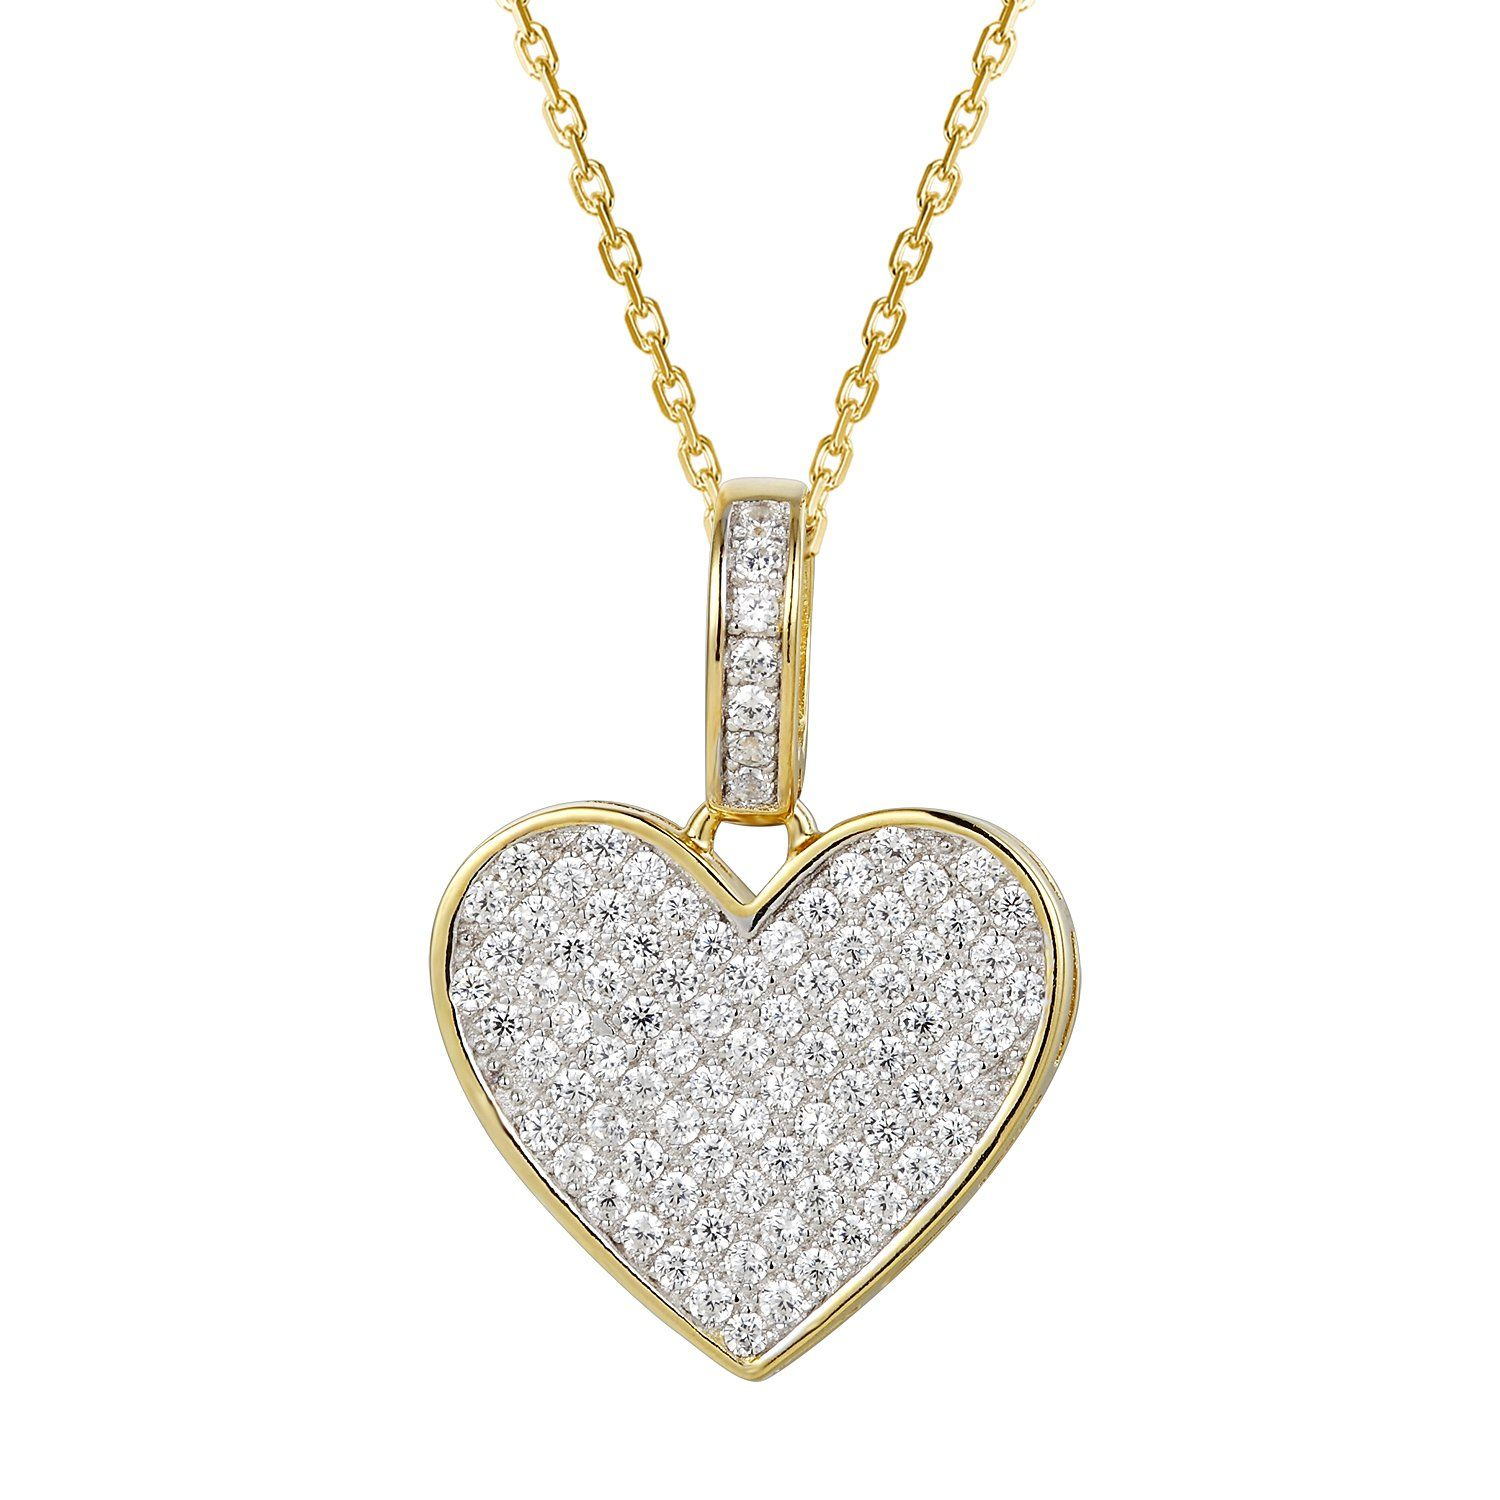 345461a735b2 NWT Swarovski Crystal Explore Heart Pendant Necklace Silver Pink  Valentine s Day